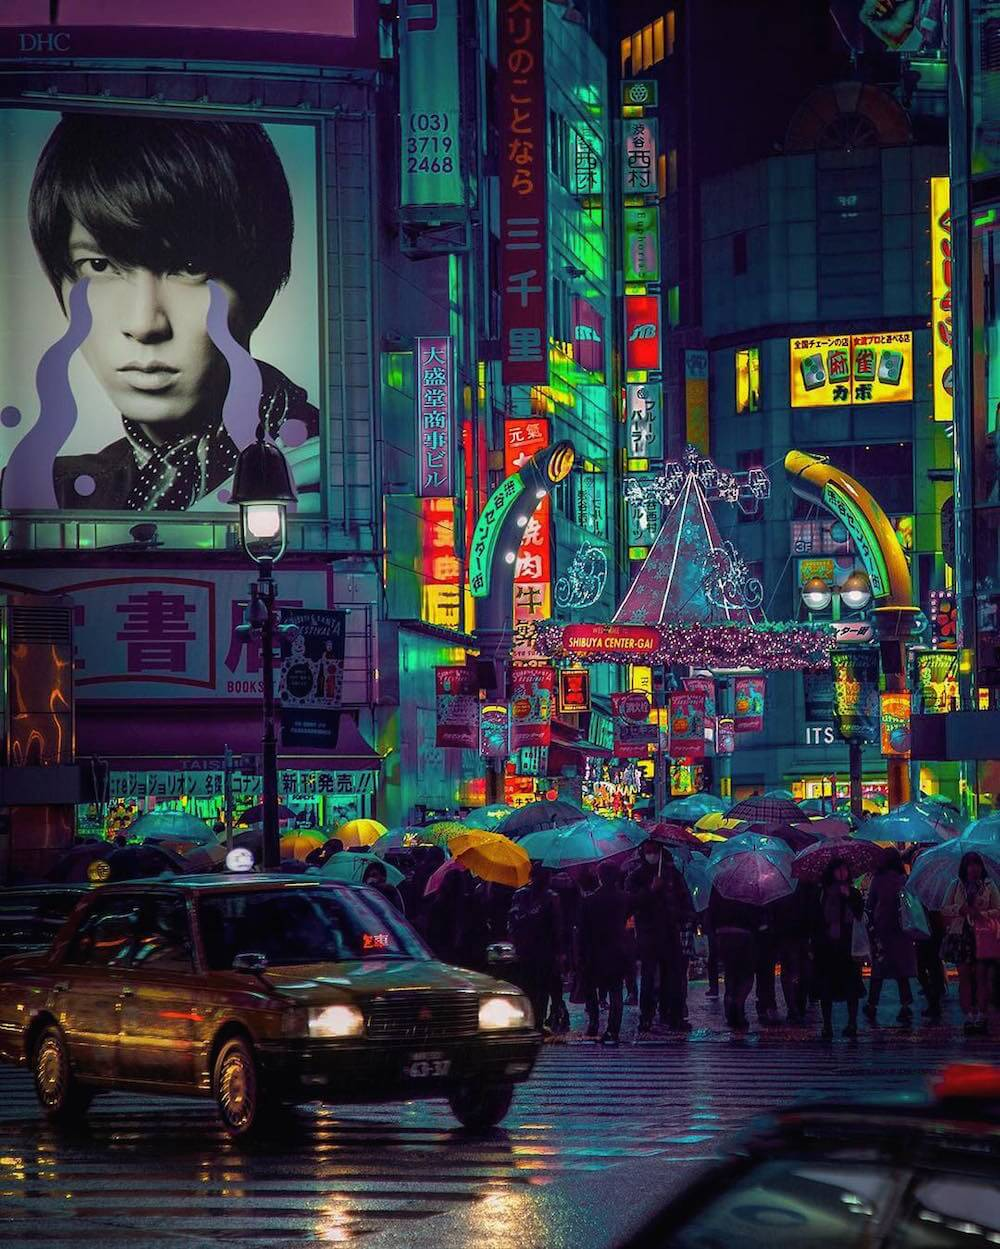 tokyos-night-life-liam-wong-freeyork-2